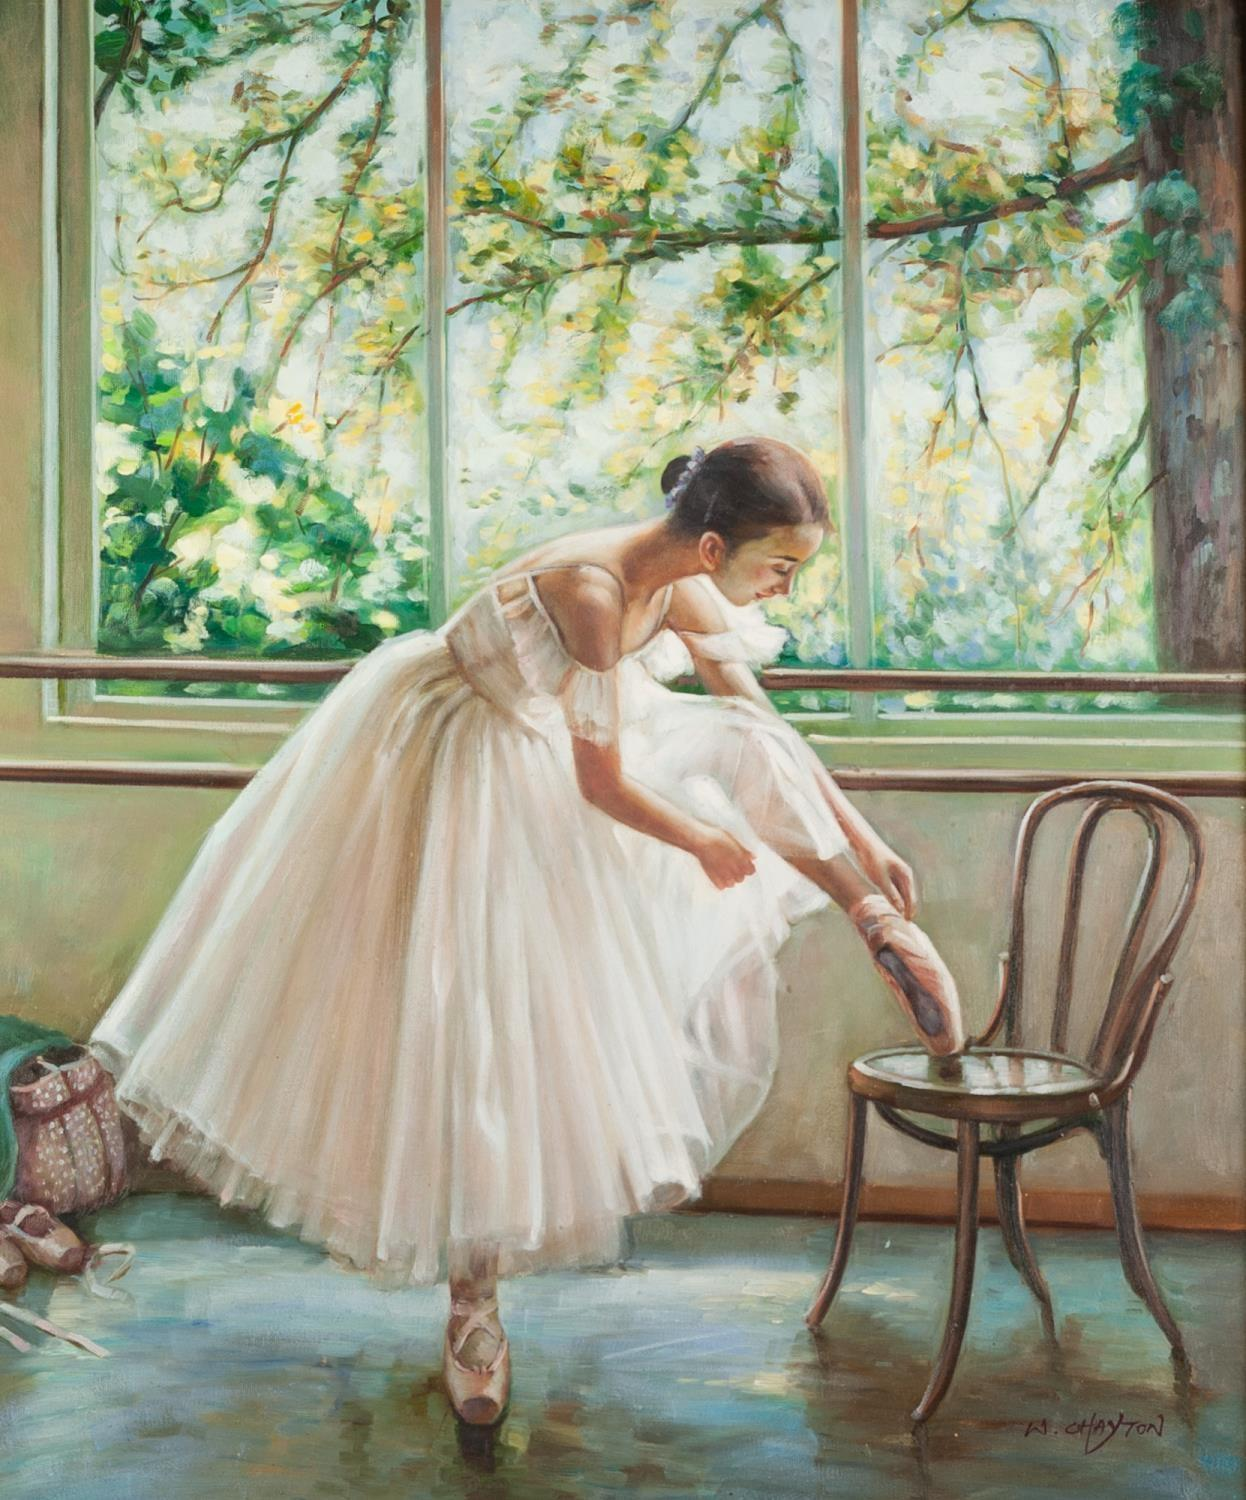 W. CHAYTON (MODERN) OIL PAINTING ON CANVAS Figure study of a ballerina with foot raised on a chair